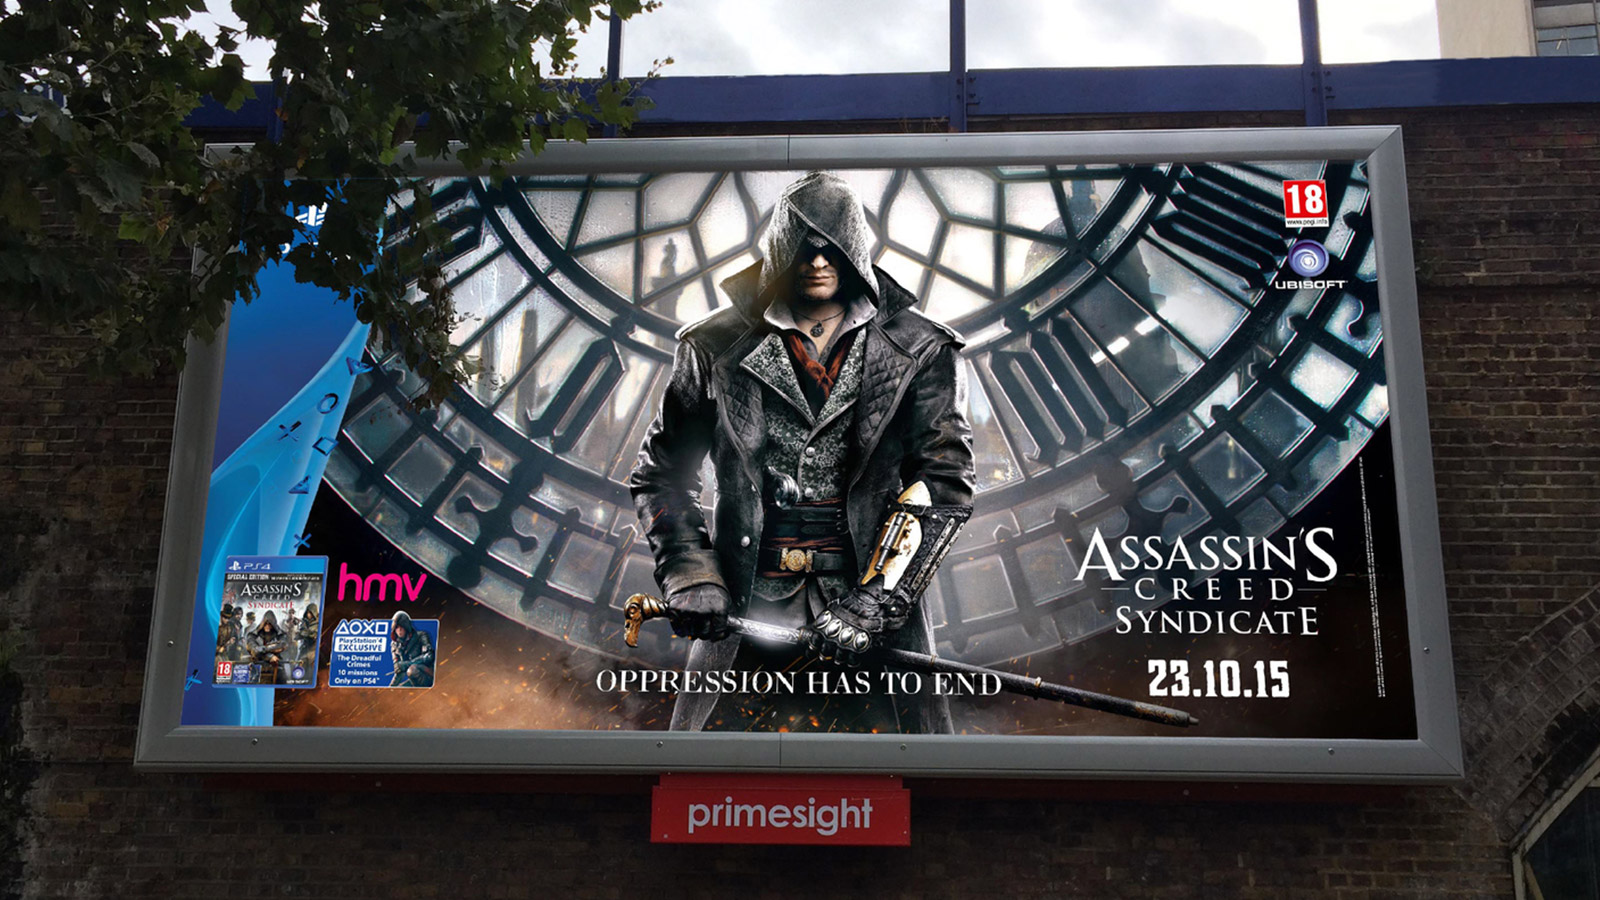 Assassins Creed Syndicate tube tunnel wrap